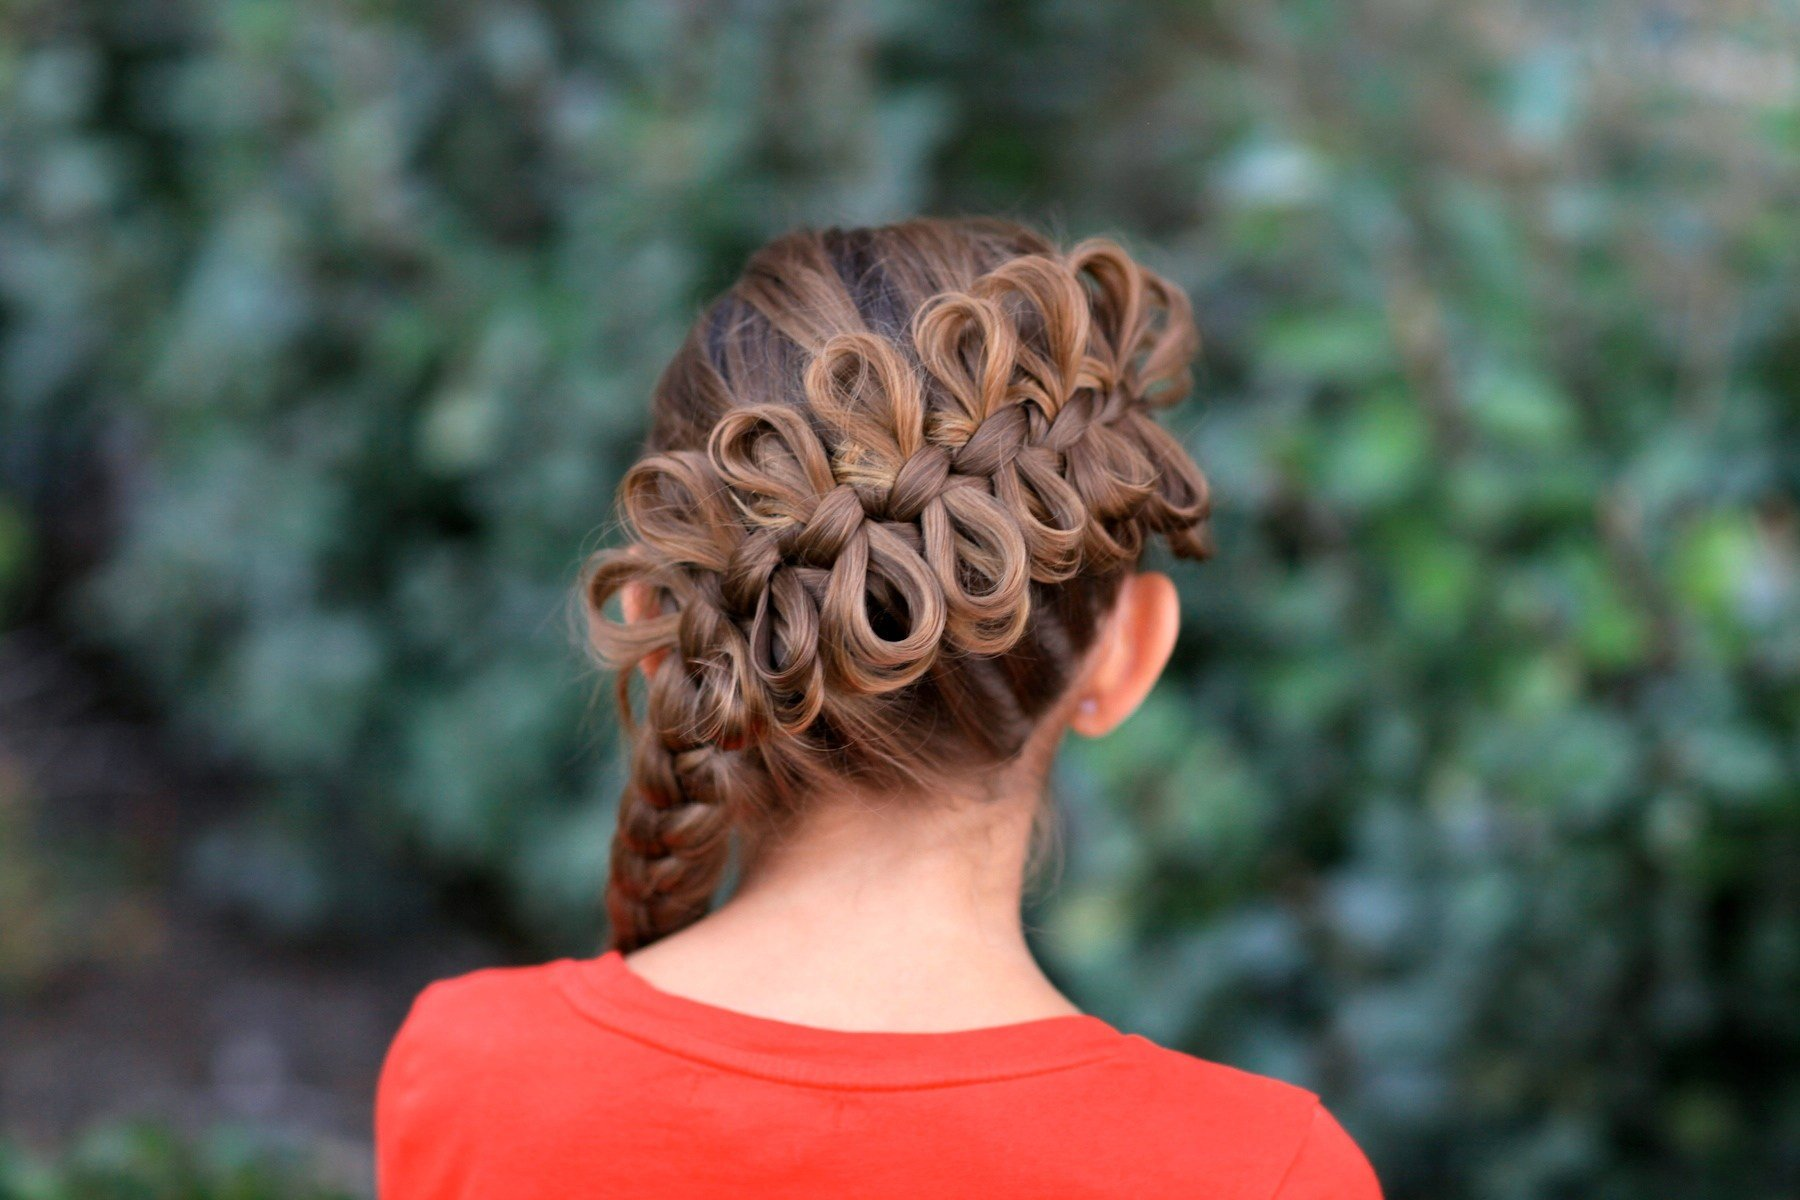 New Diagonal Bow Braid Popular Hairstyles Cute Girls Ideas With Pictures